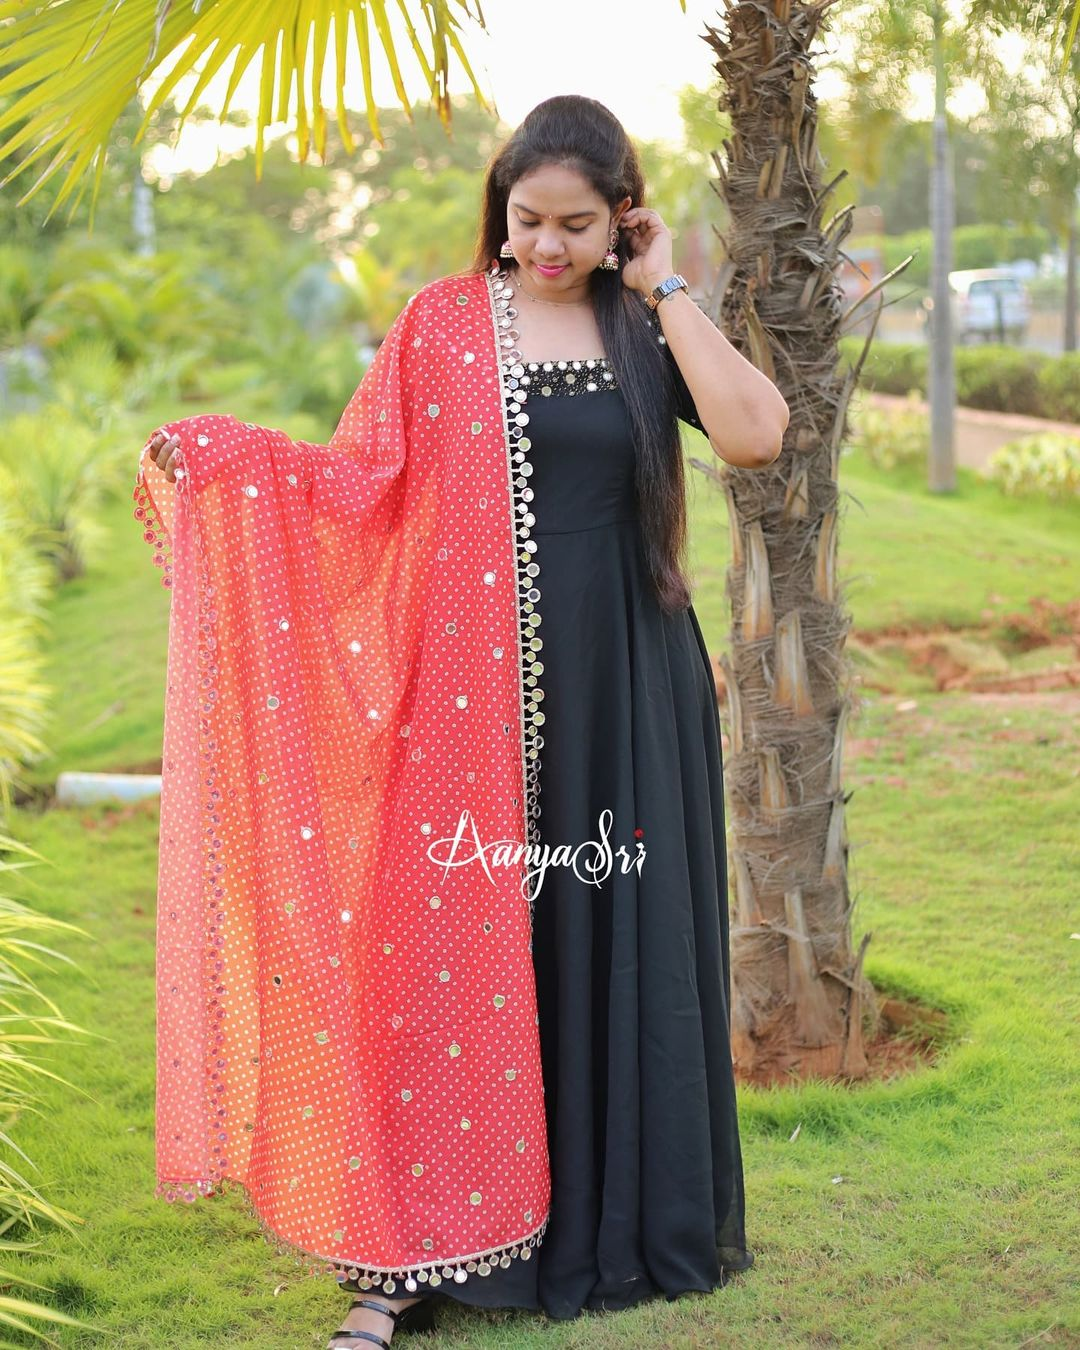 Black long frock with intricate real mirrors work on the yoke and sleeves paired with an elegant mirror worked red(has a slight orange undertone) colored bhandini dupatta. 2021-09-21